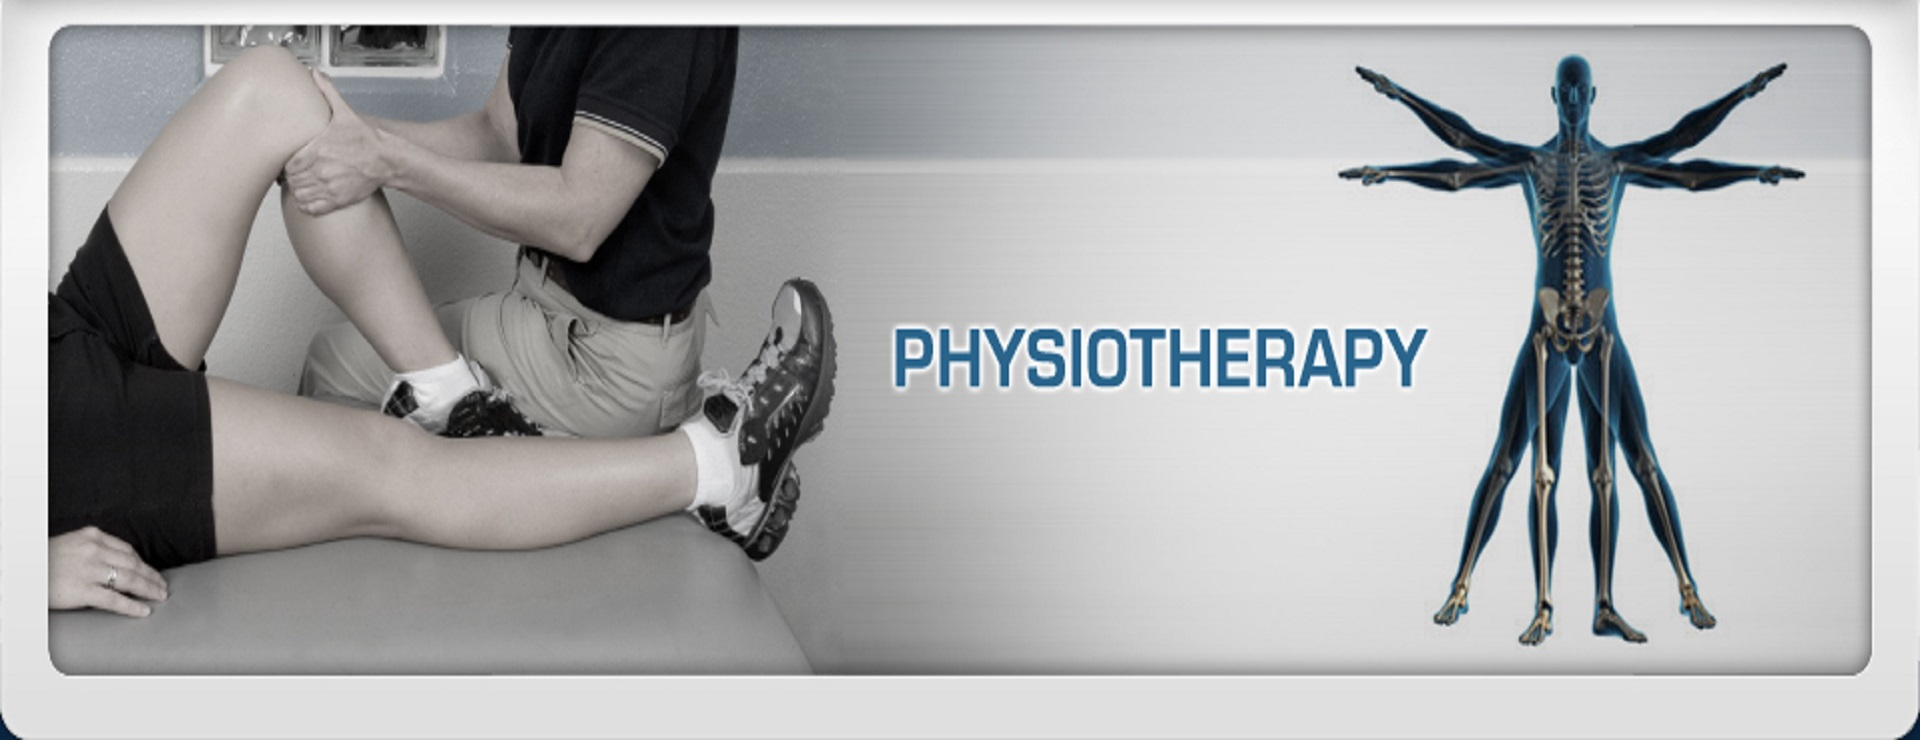 Physiotherapy cover